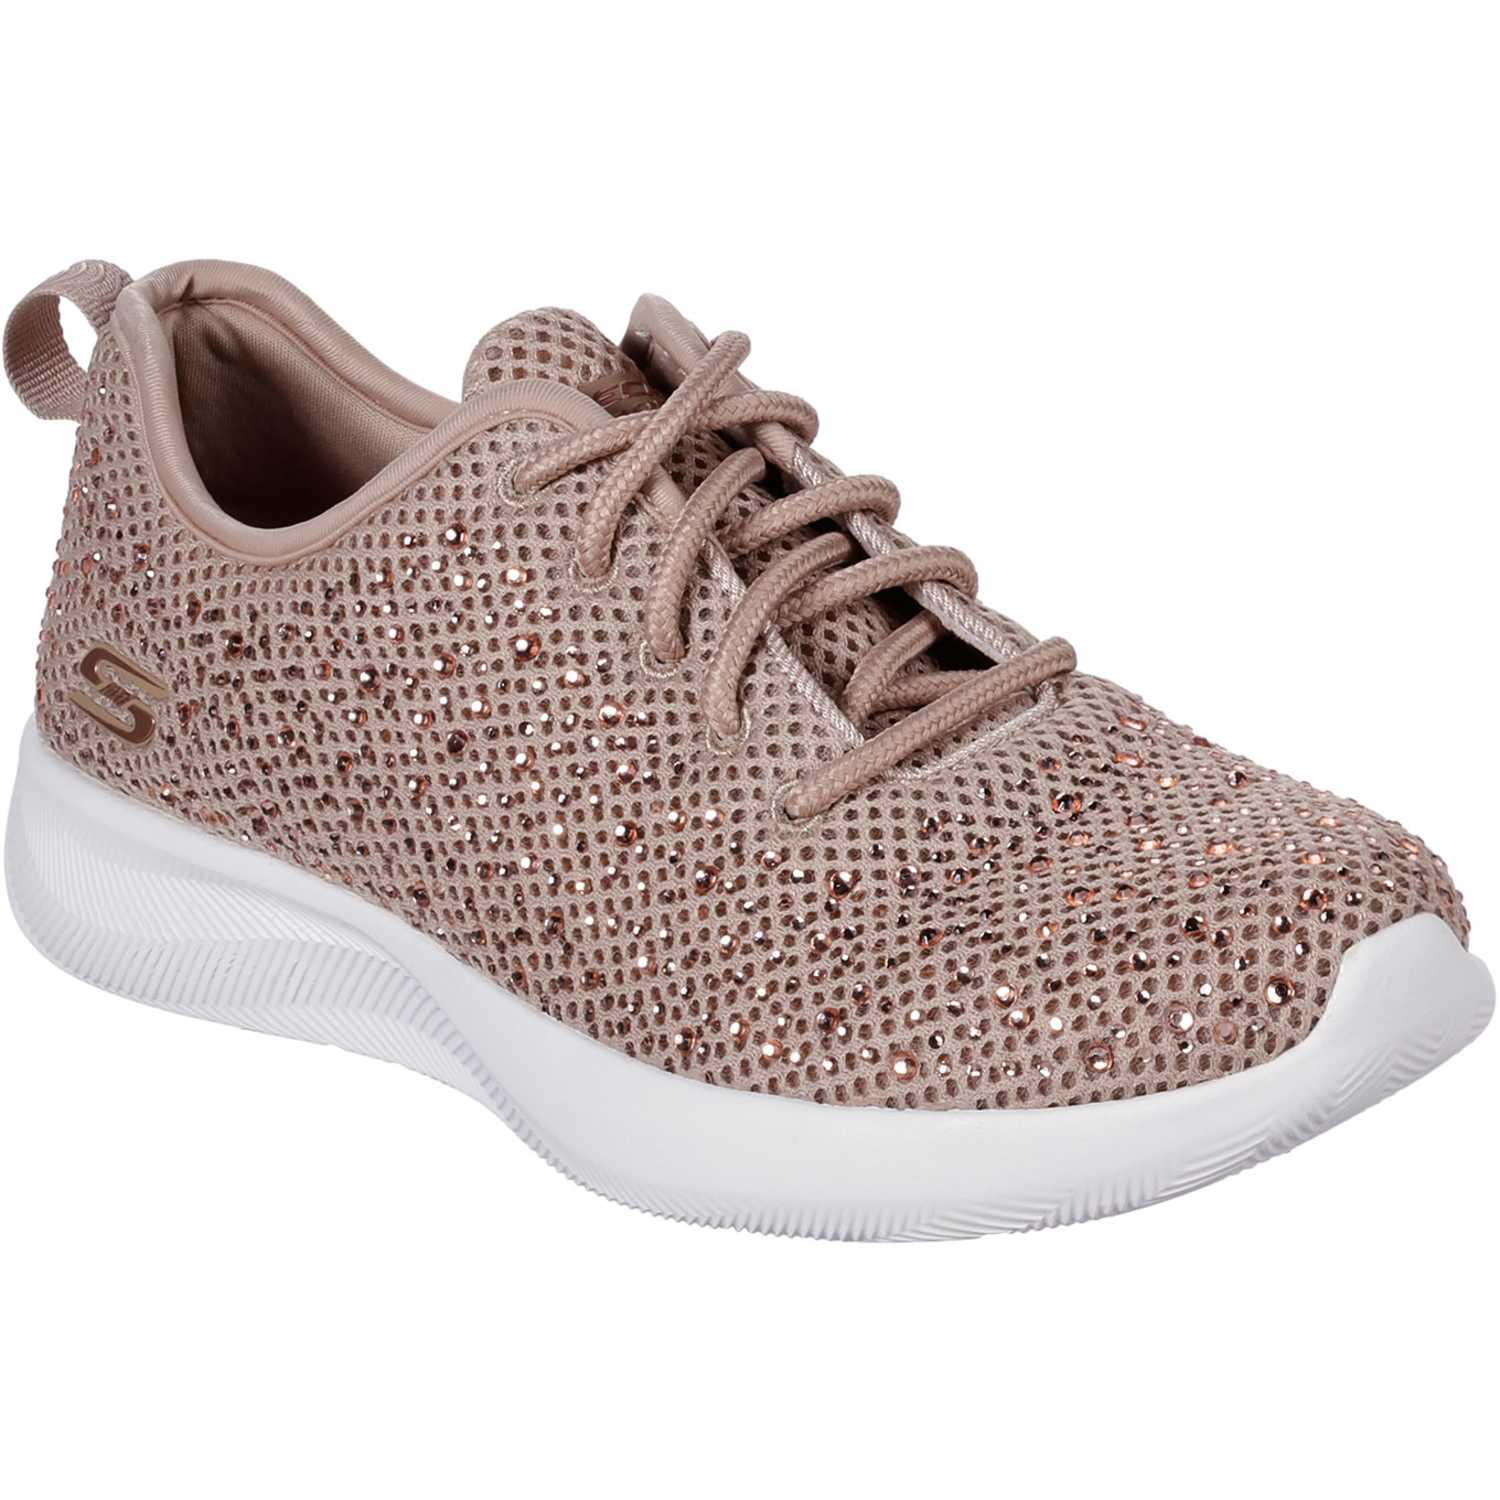 Skechers bobs squad 2 galaxy chaser Marron Walking